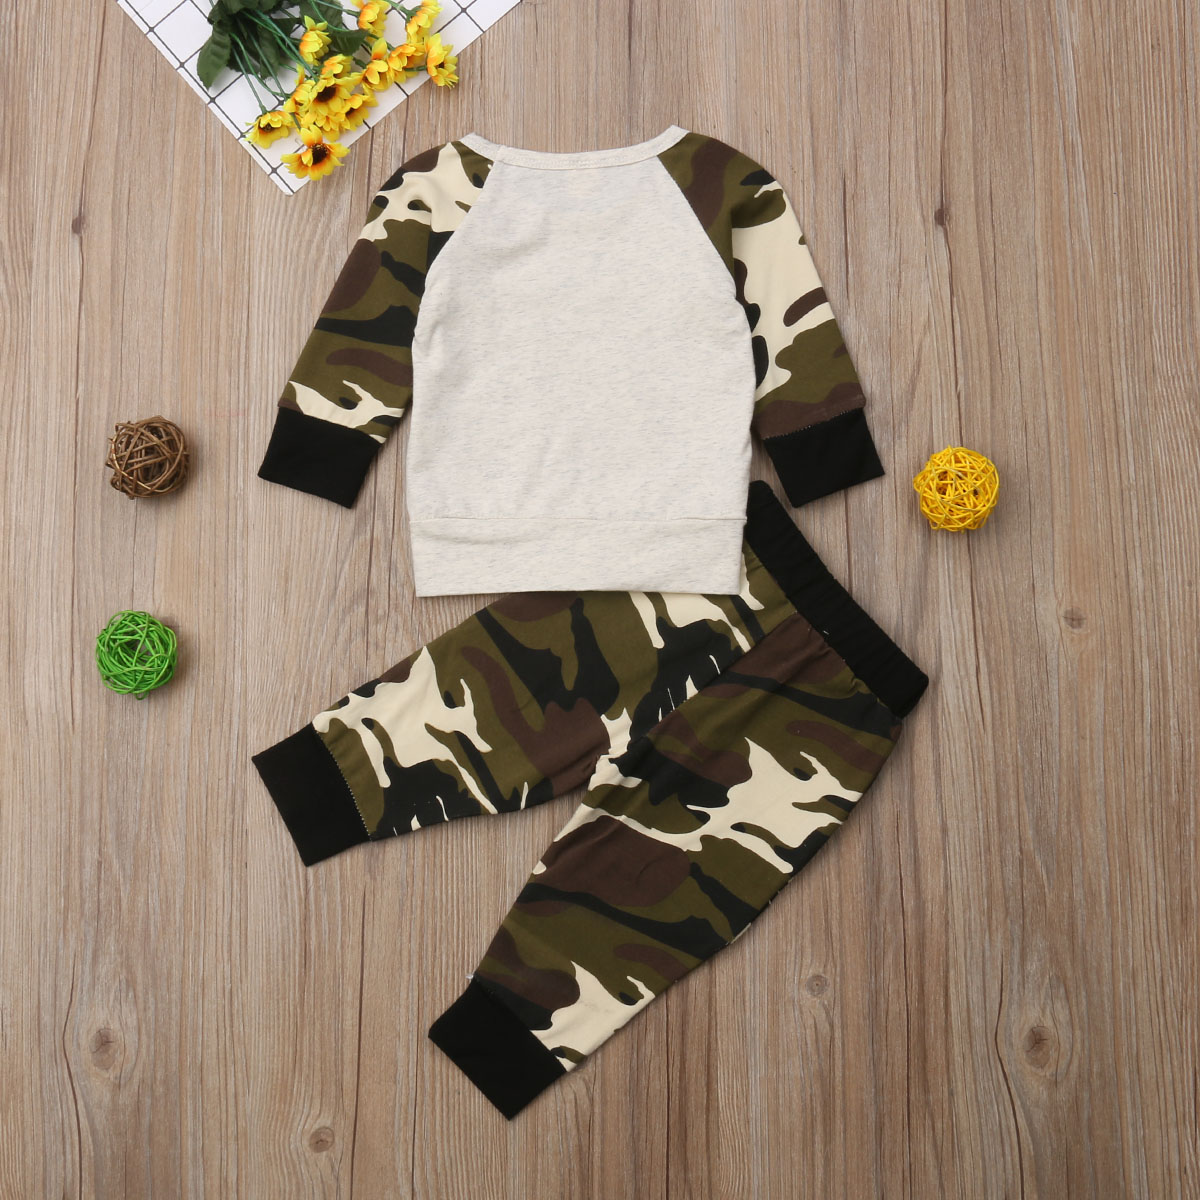 Kids Baby Girl Boy Clothes Cotton Tops Long Sleeve T shirt Camouflage Pants Leggings Toddler Outfits Set 2019 in Clothing Sets from Mother Kids